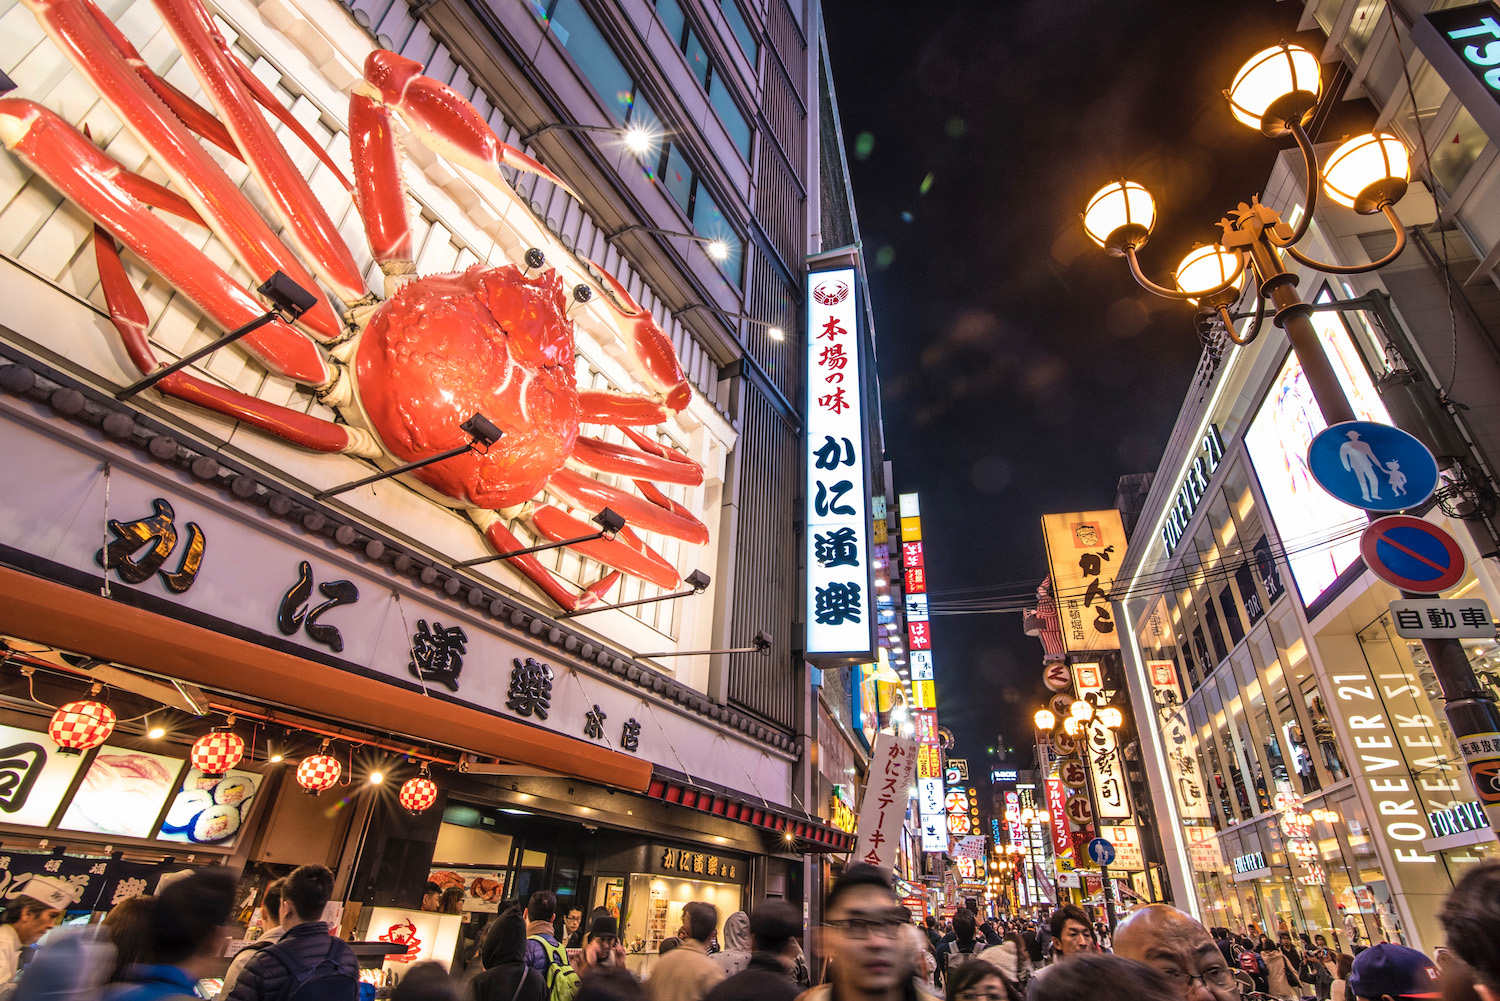 Dotonbori in Osaka, Japan